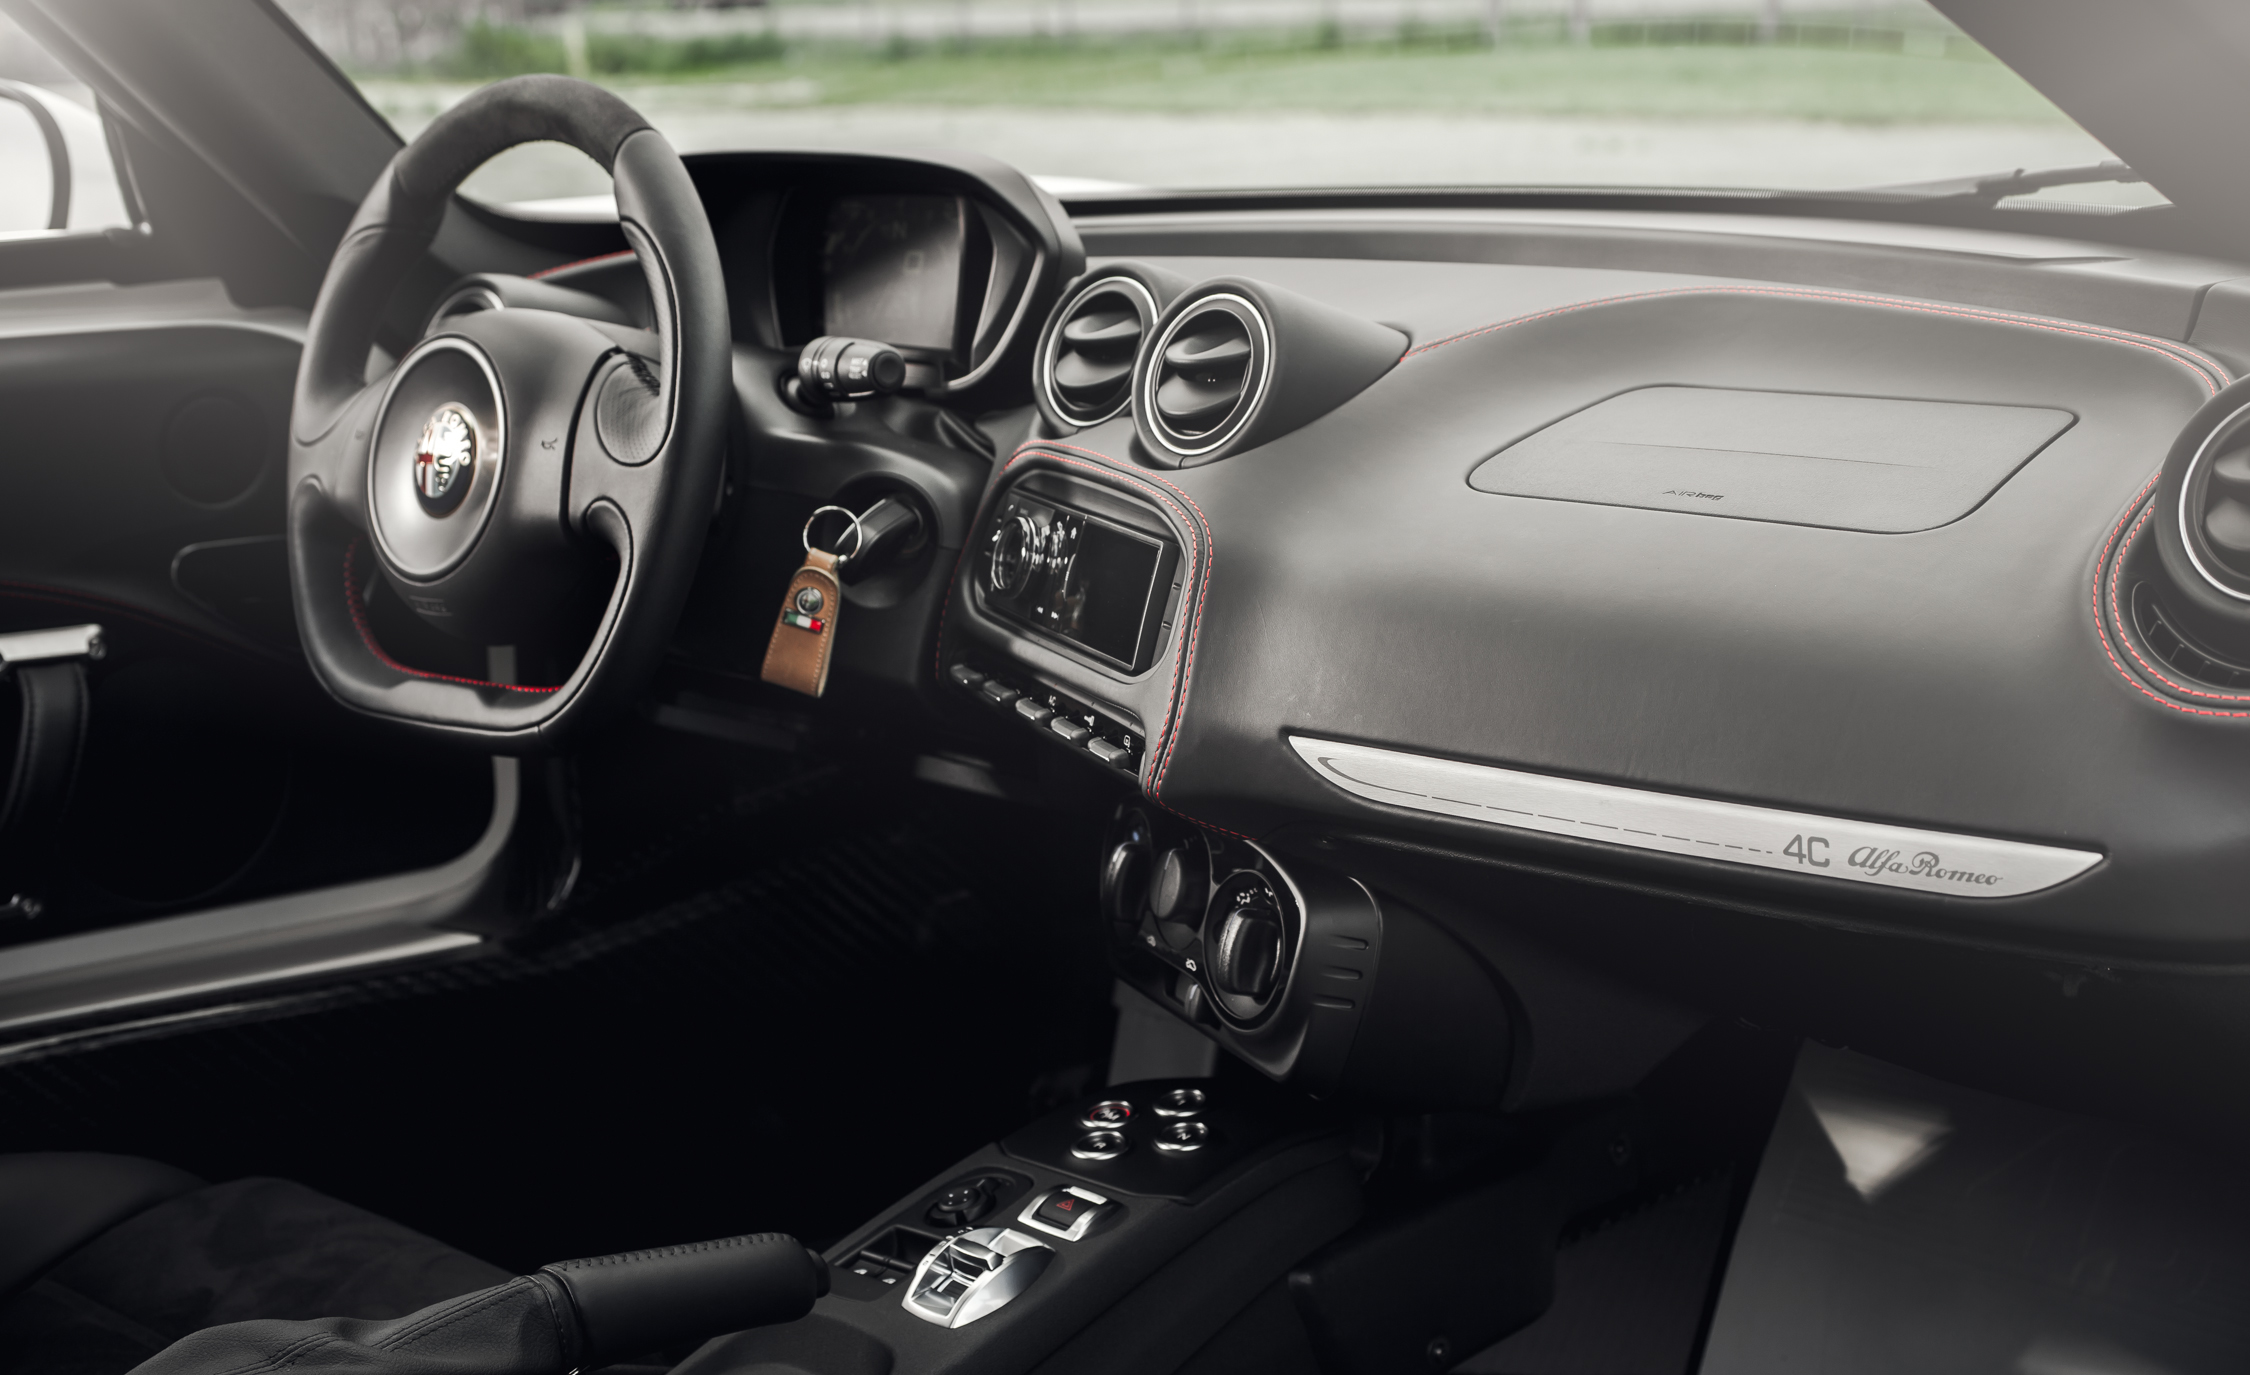 2015 Alfa Romeo 4C Interior (Photo 22 of 25)